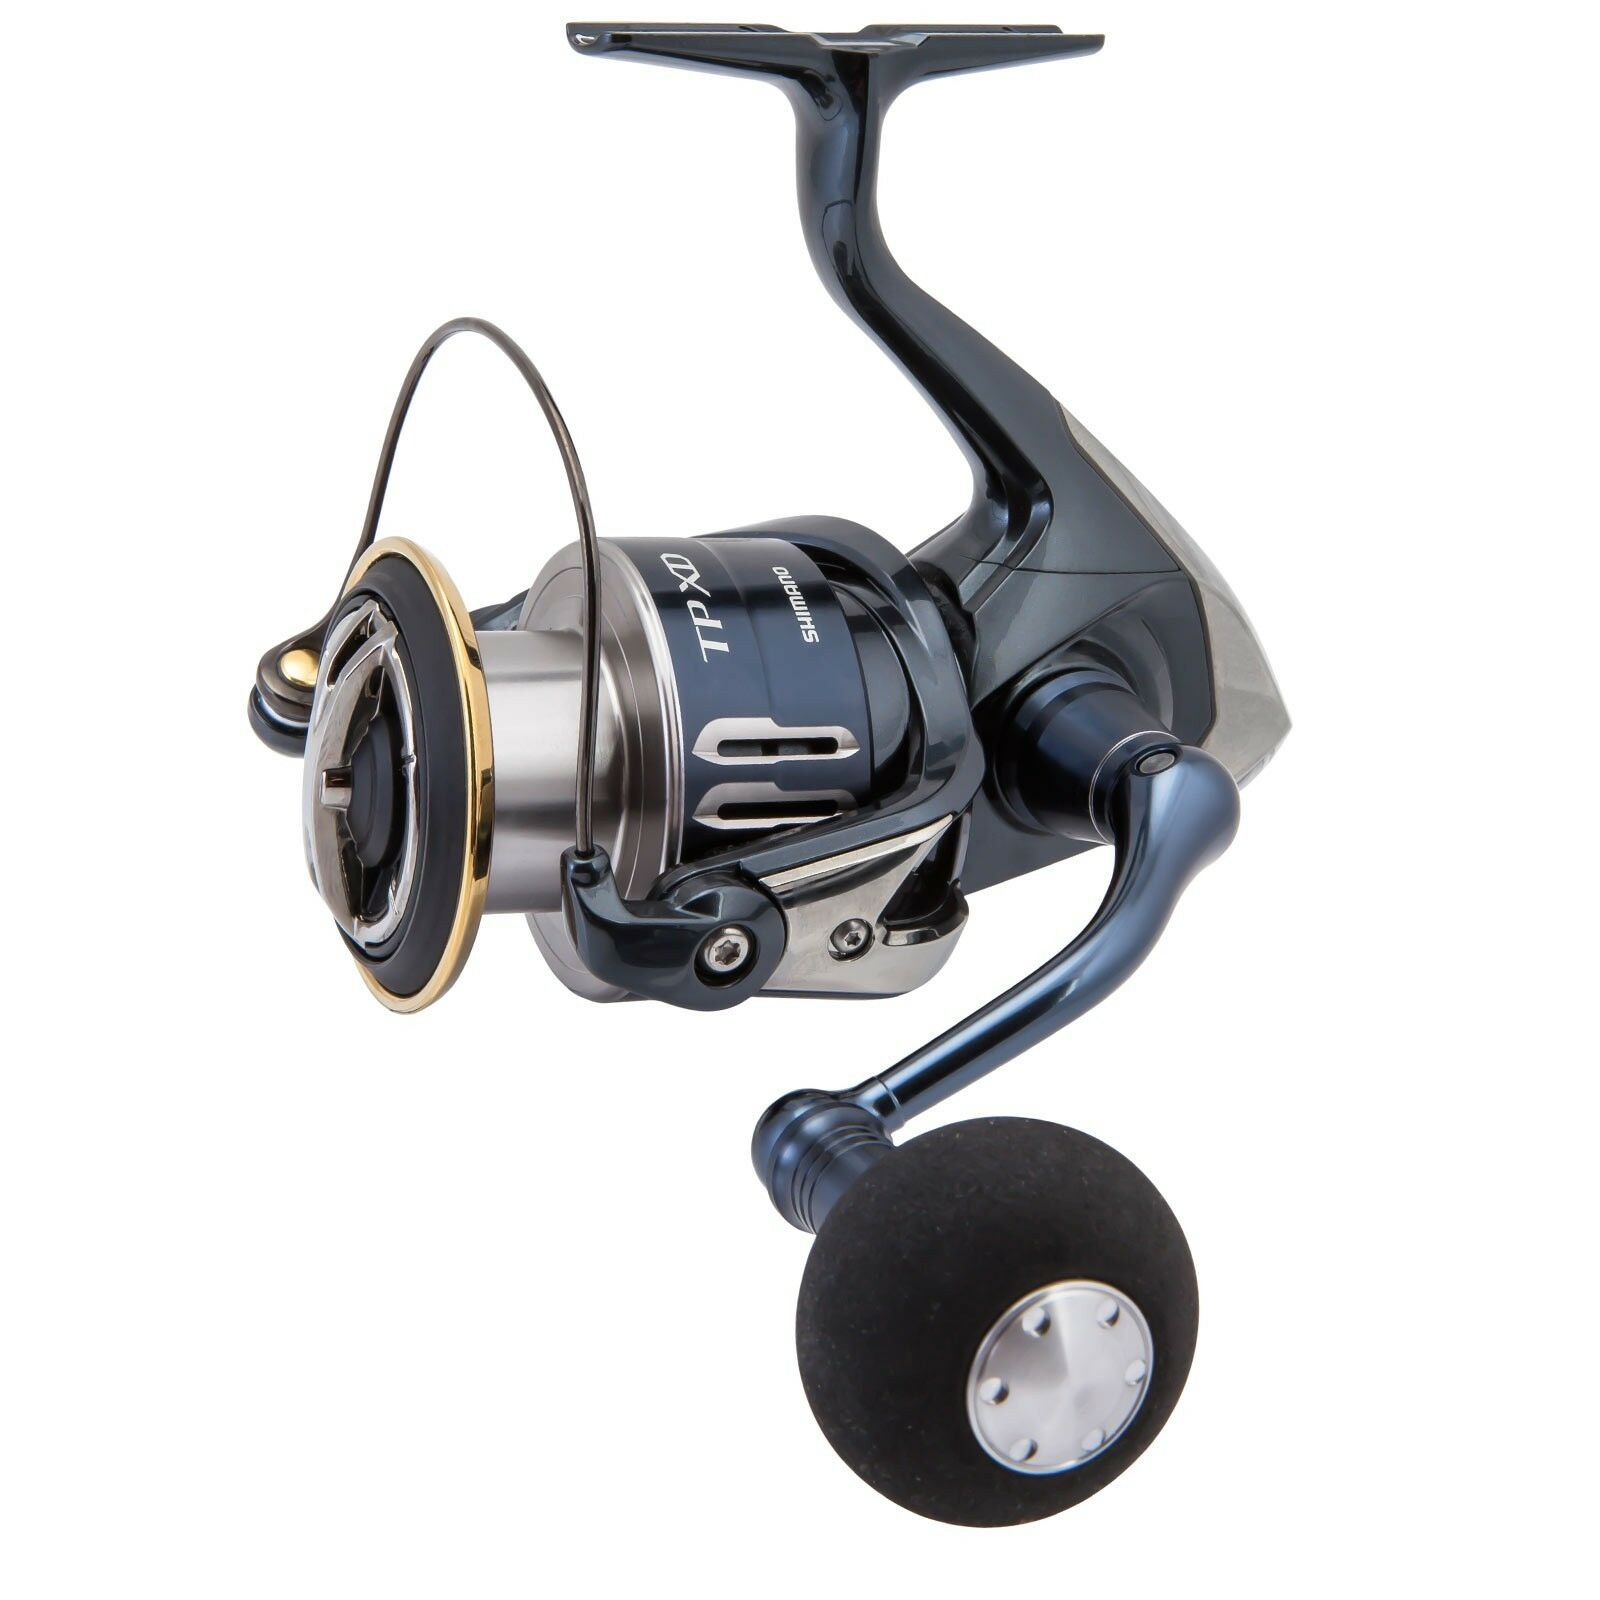 Shimano Twin Power XD spinnrolle Novelty 2017 spinnrolle Front Brake role